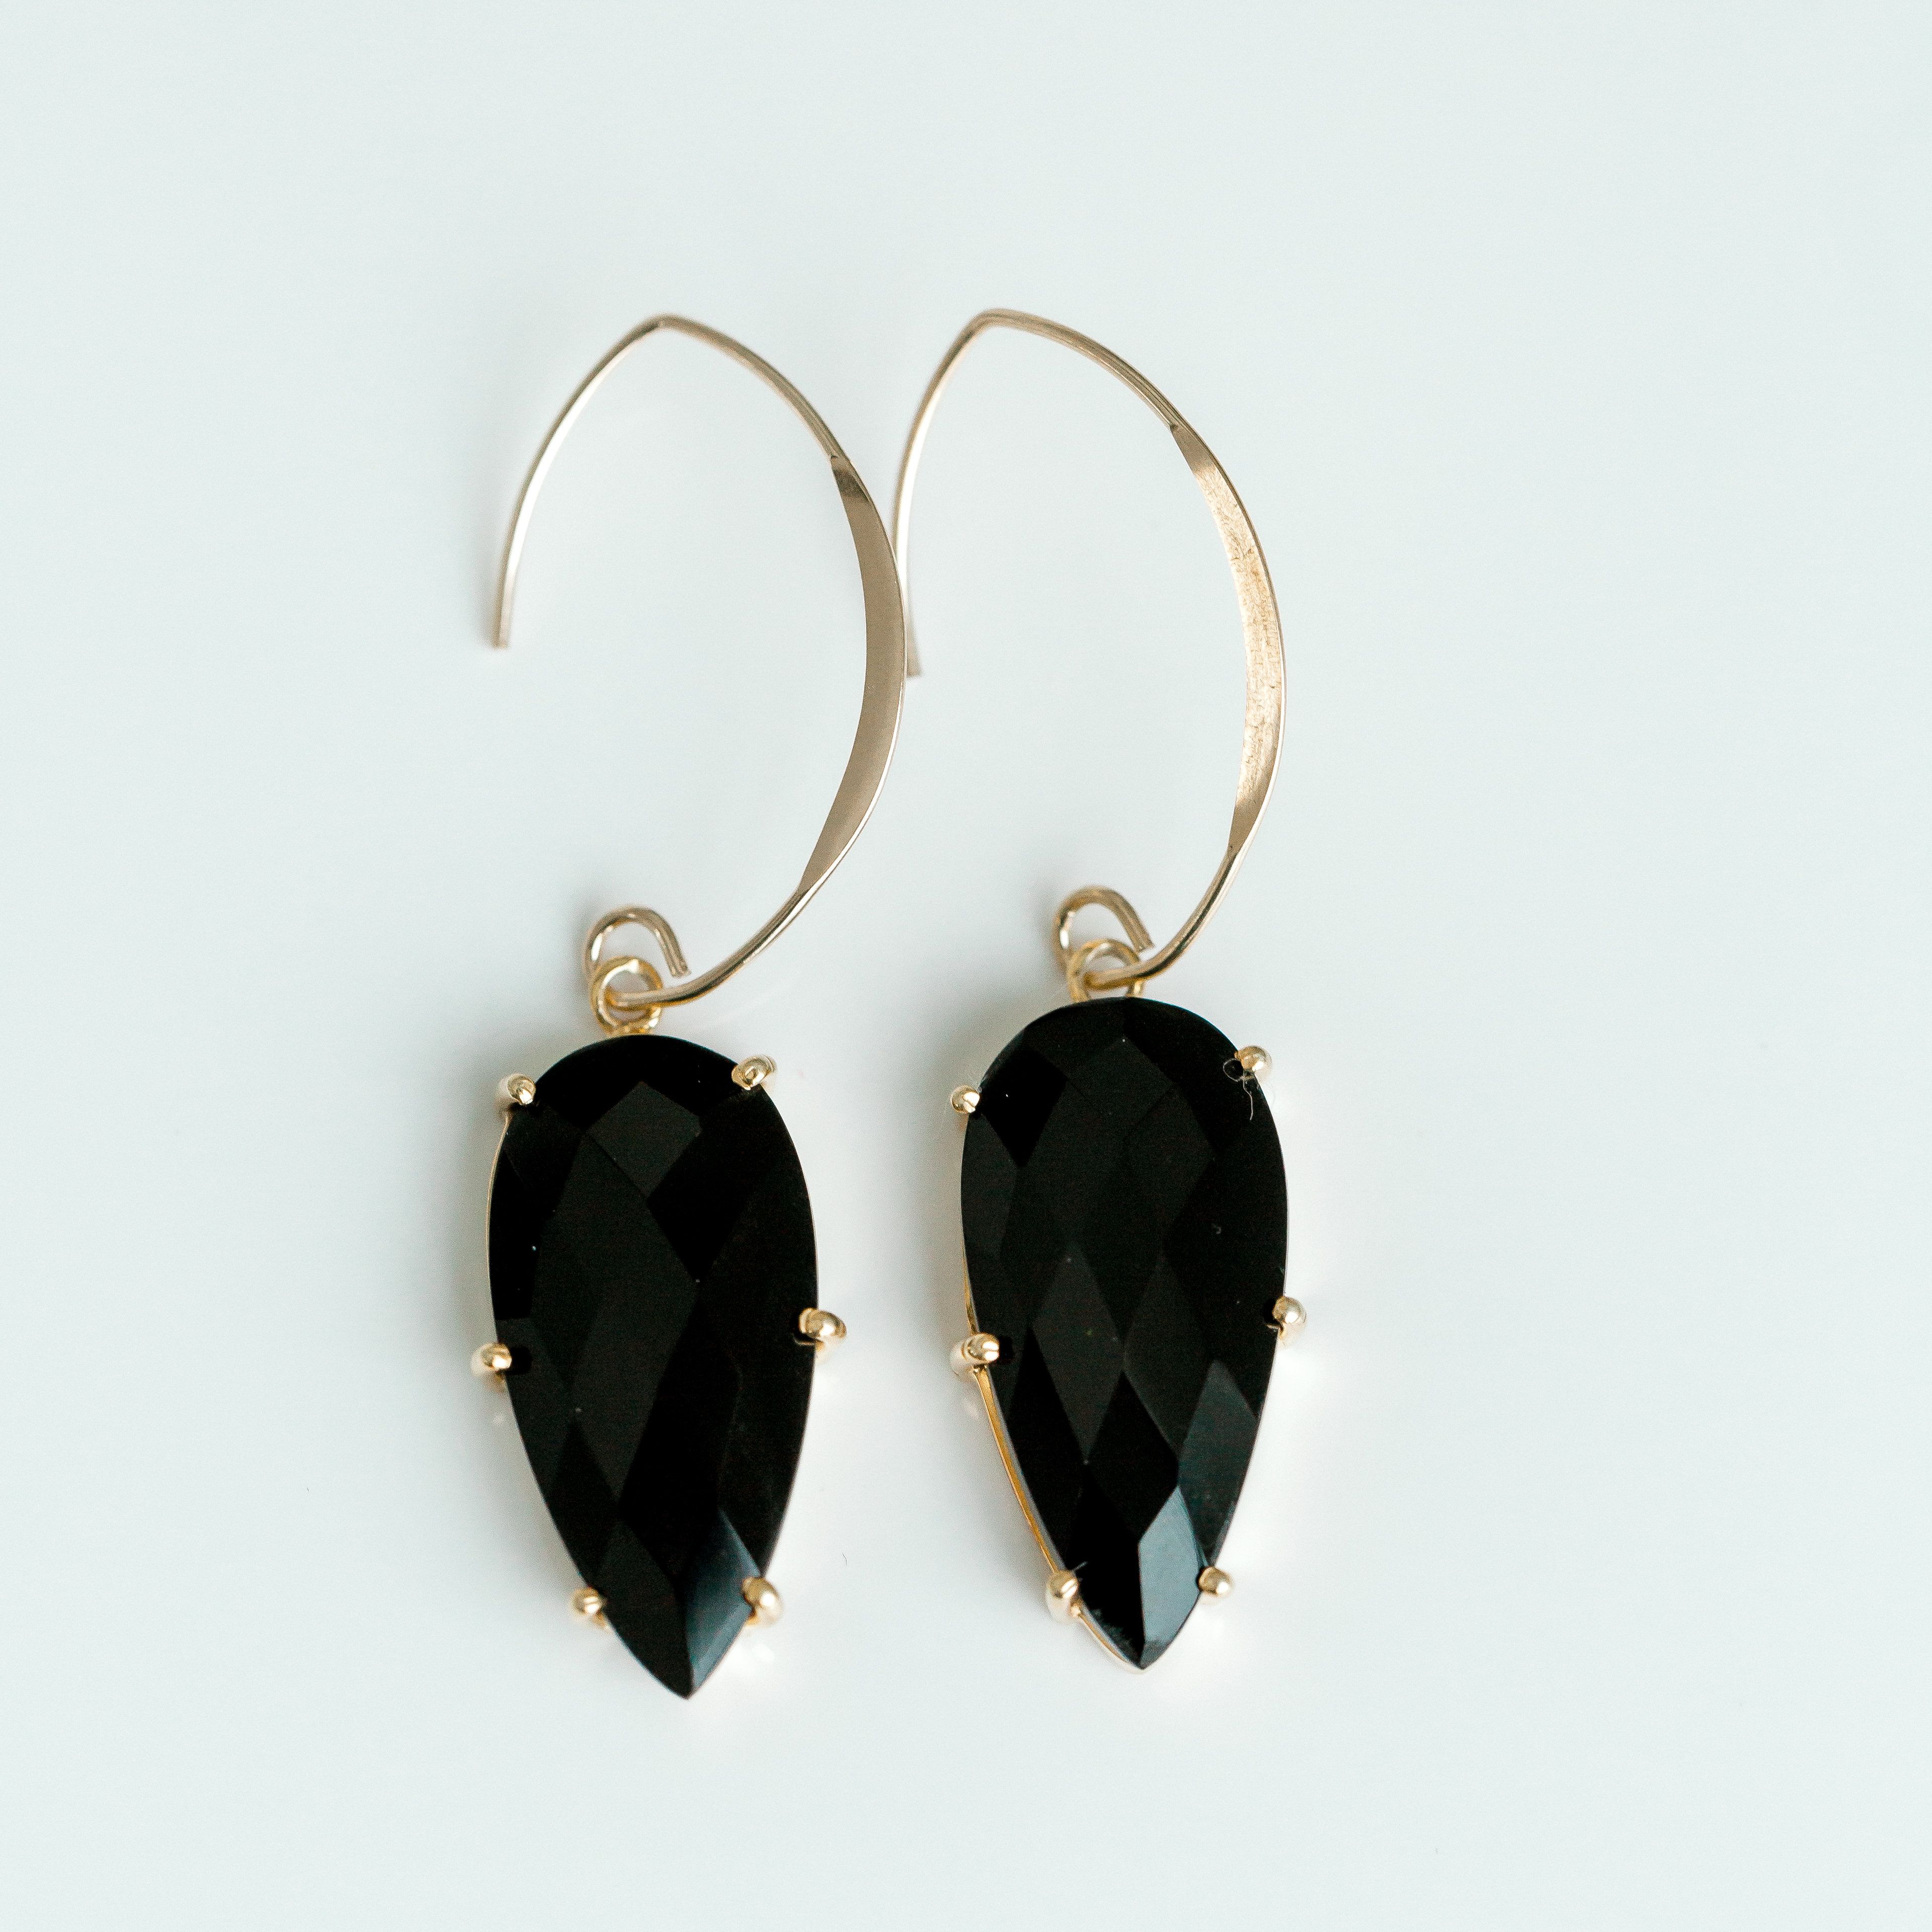 Sterling silver drop earrings set with onyx stones.